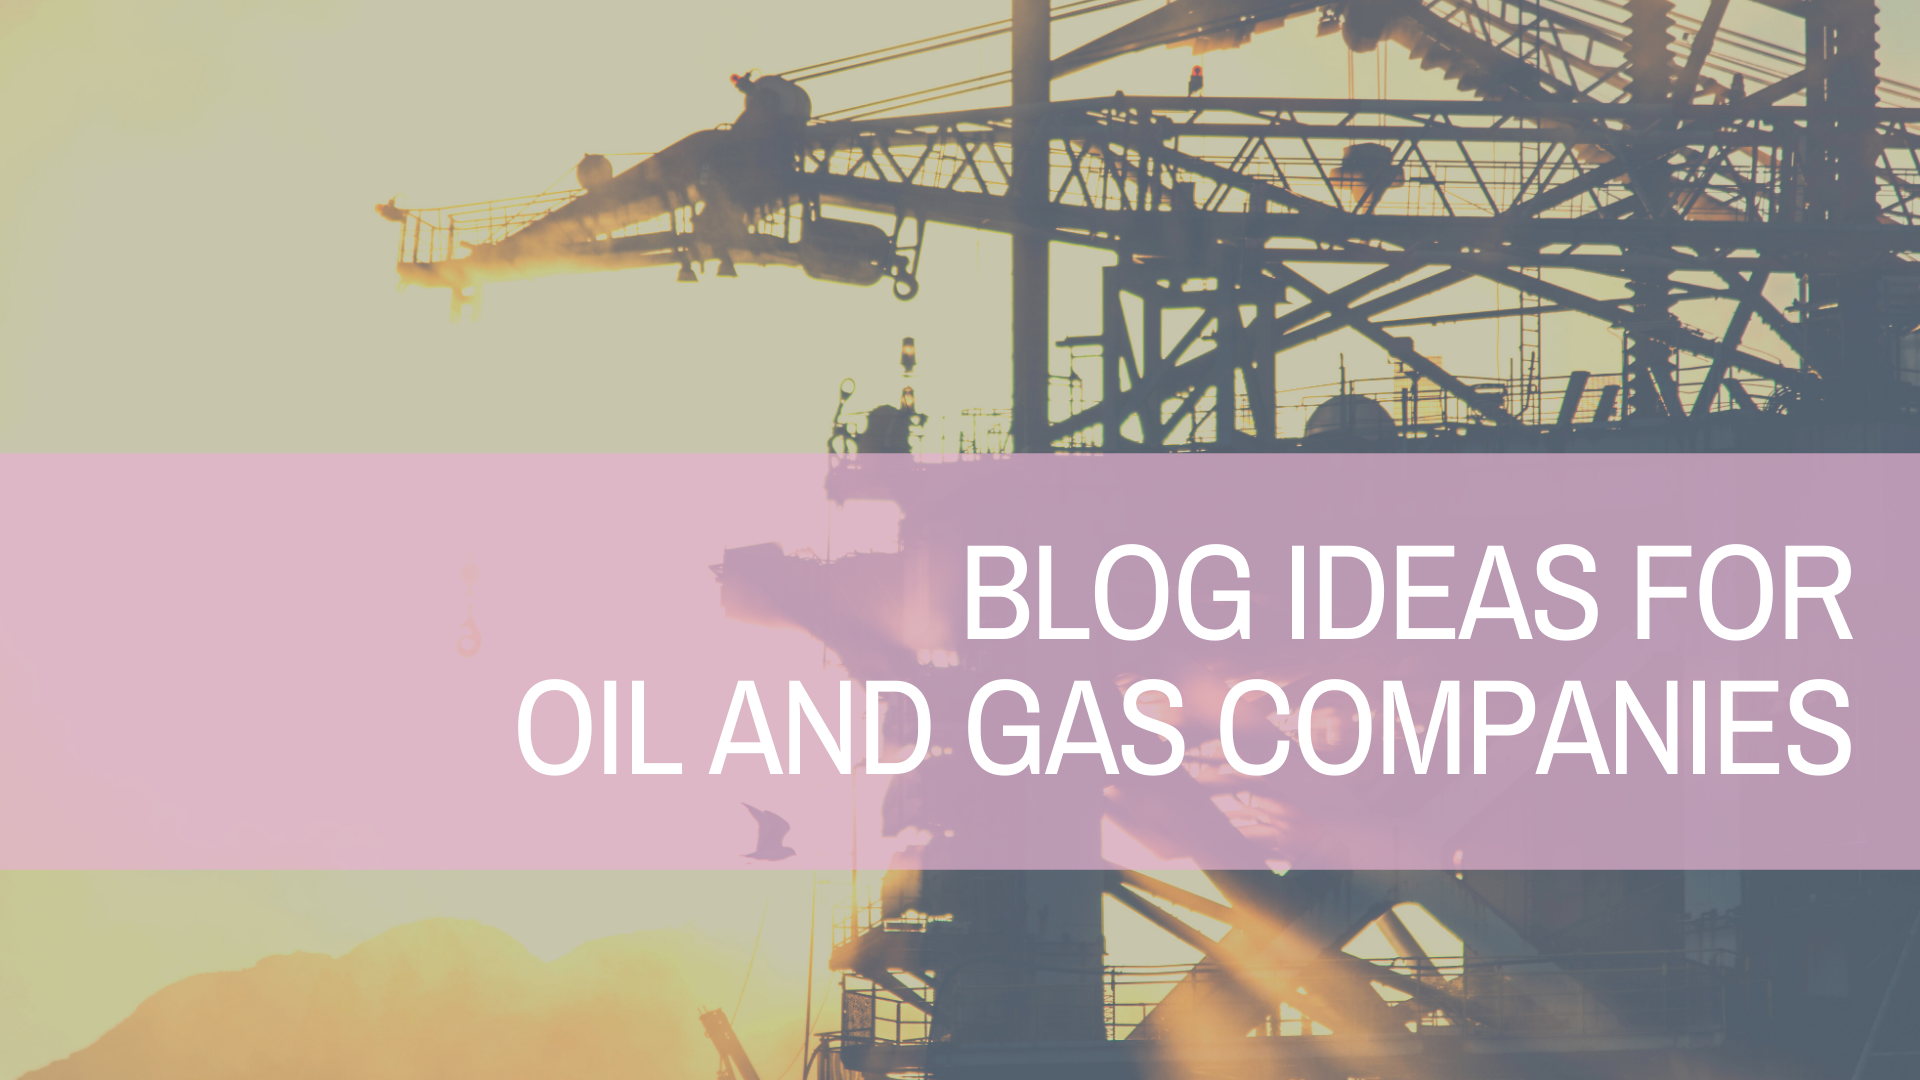 Blog Ideas For Oil and Gas Companies | Amplihigher